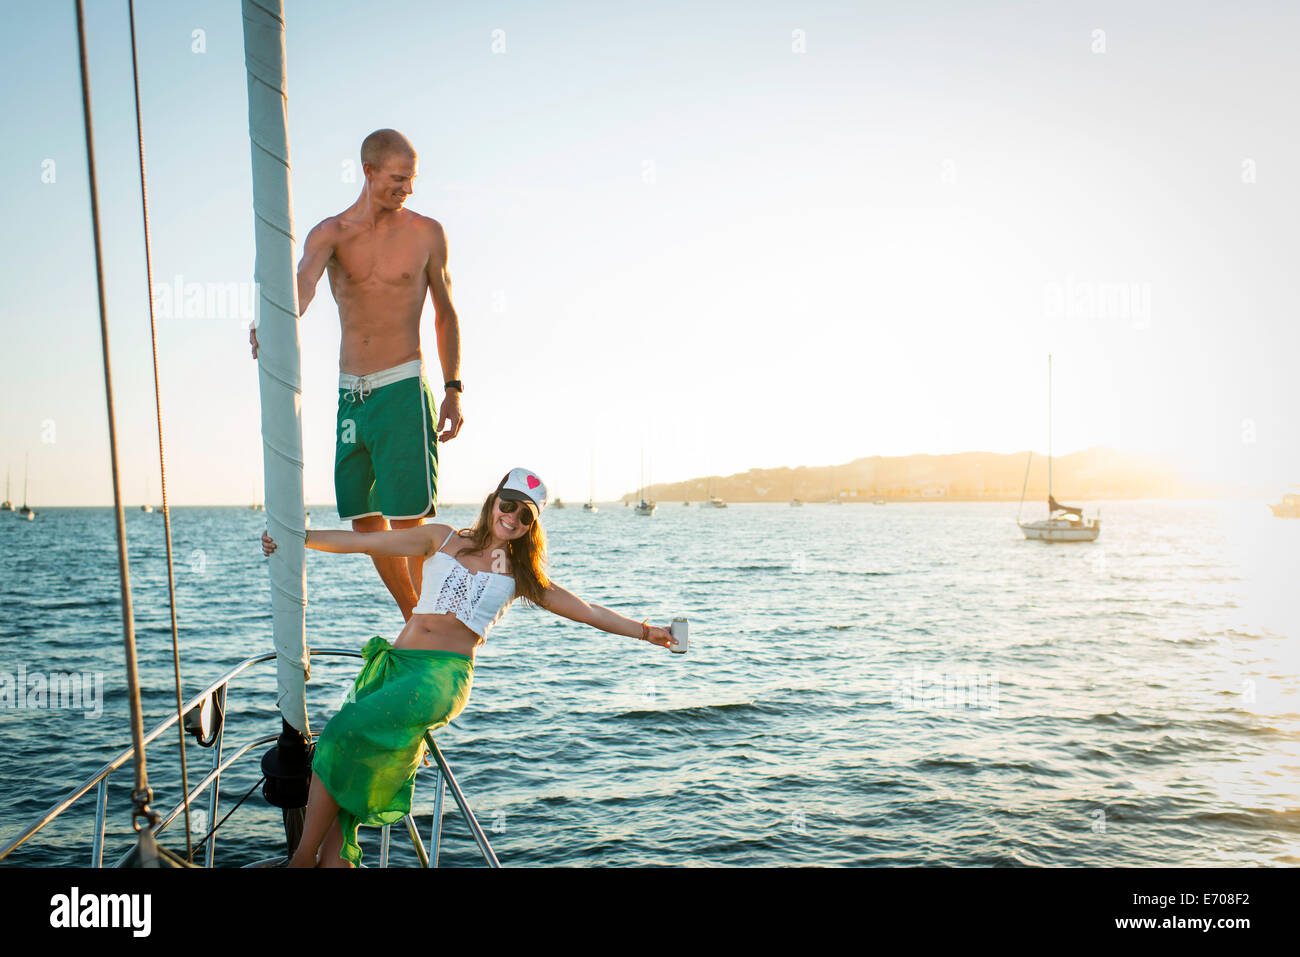 Playful couple on boat in ocean Photo Stock